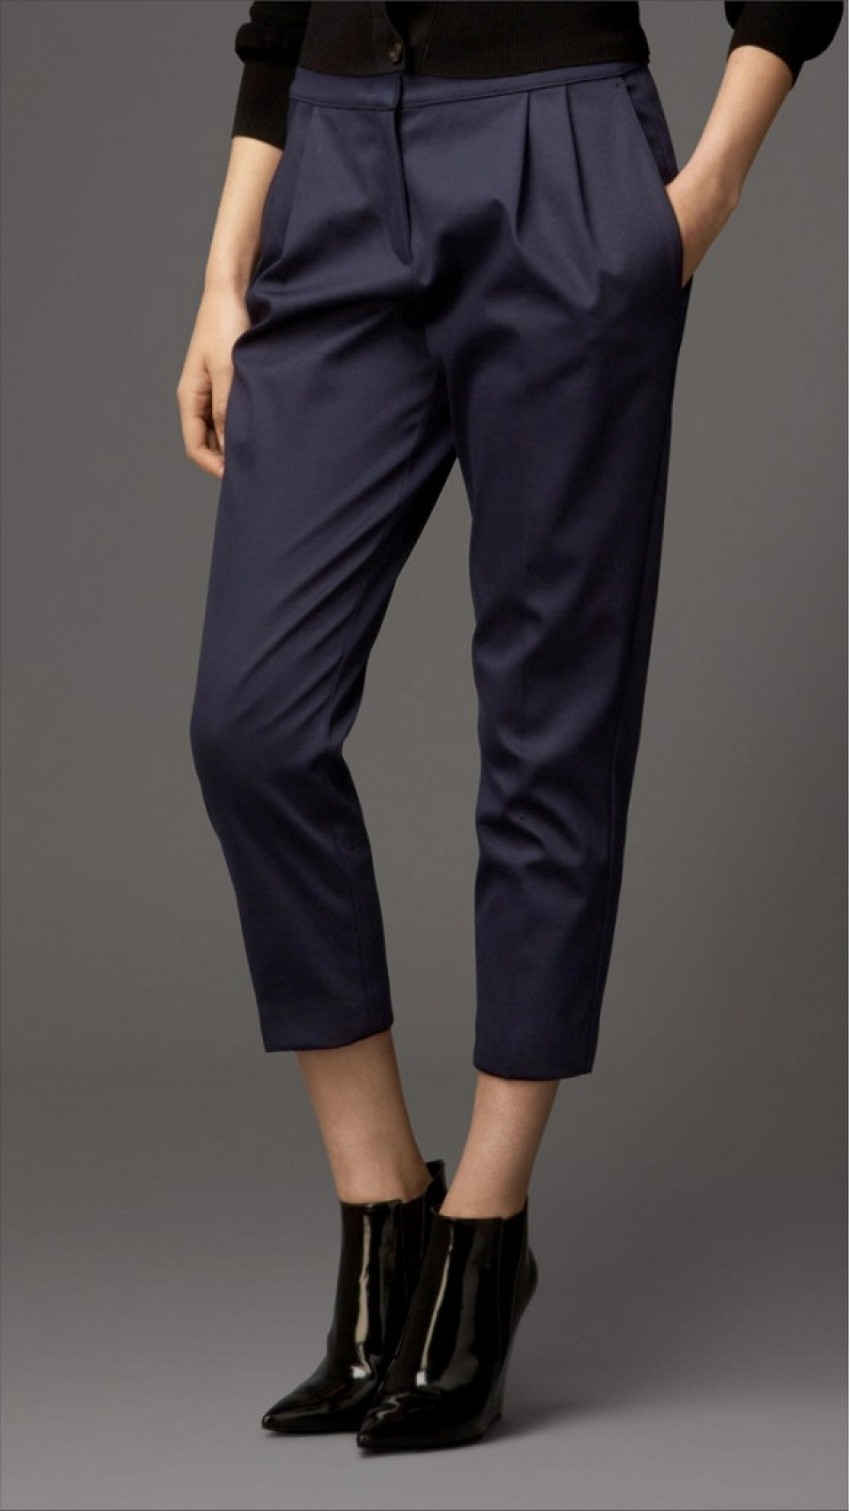 Burberry Satin High-Waist Cropped Pants